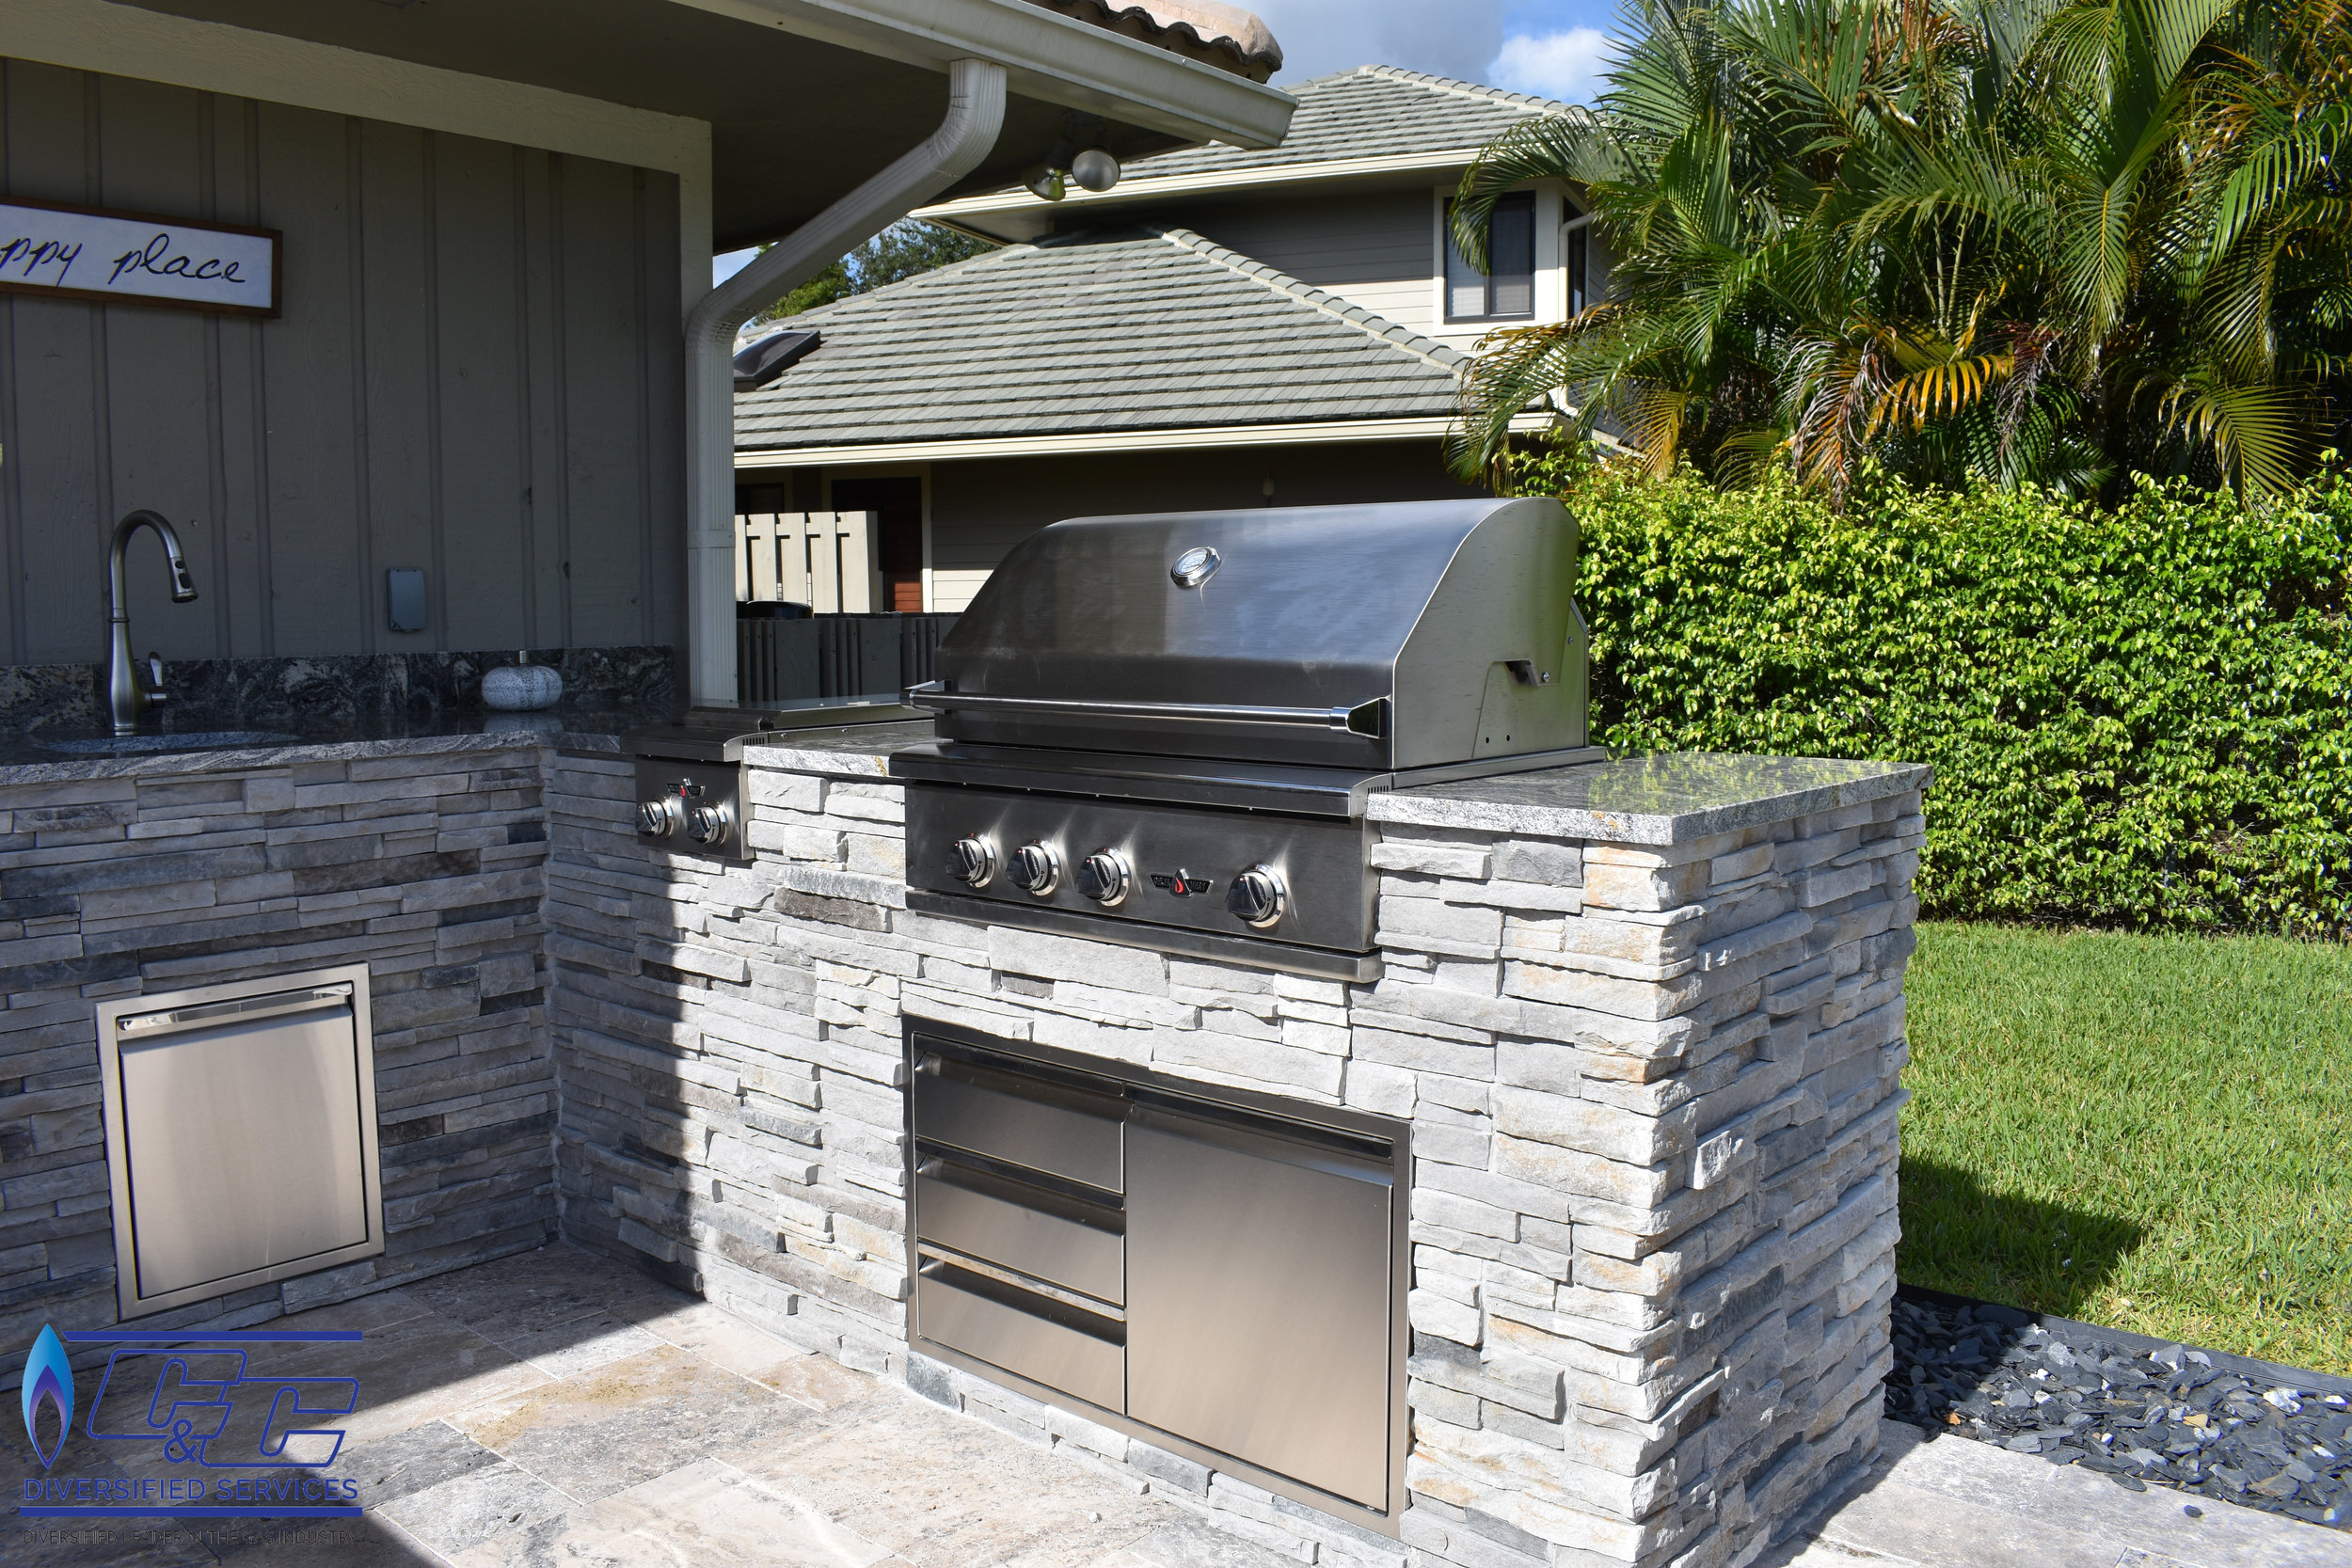 "32"" Delta Heat Gas Grill with Infrared Rotisserie and Sear Zone"